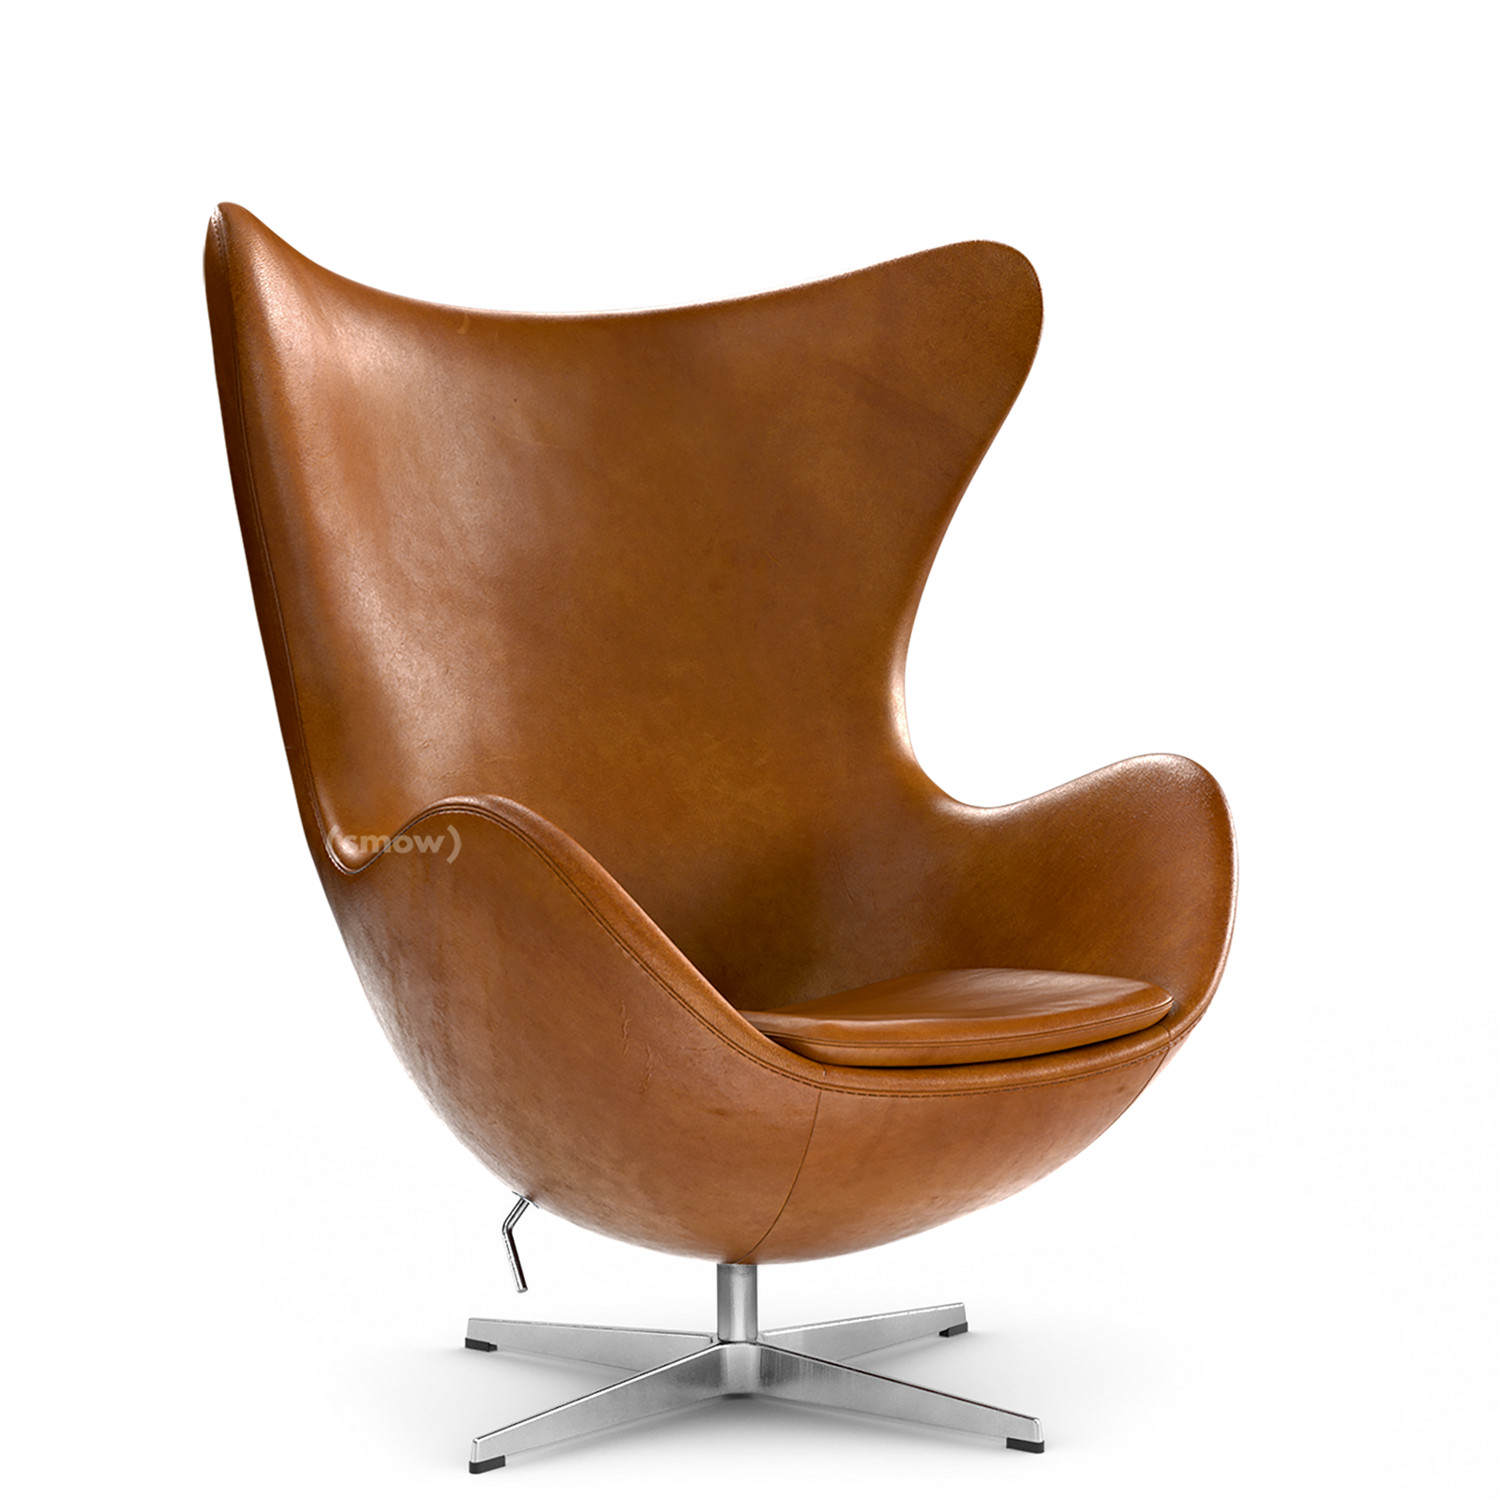 Fritz Hansen Egg Chair Leather Grace Walnut Without Footstool By Arne Jacobsen 1958 Designer Furniture By Smow Com